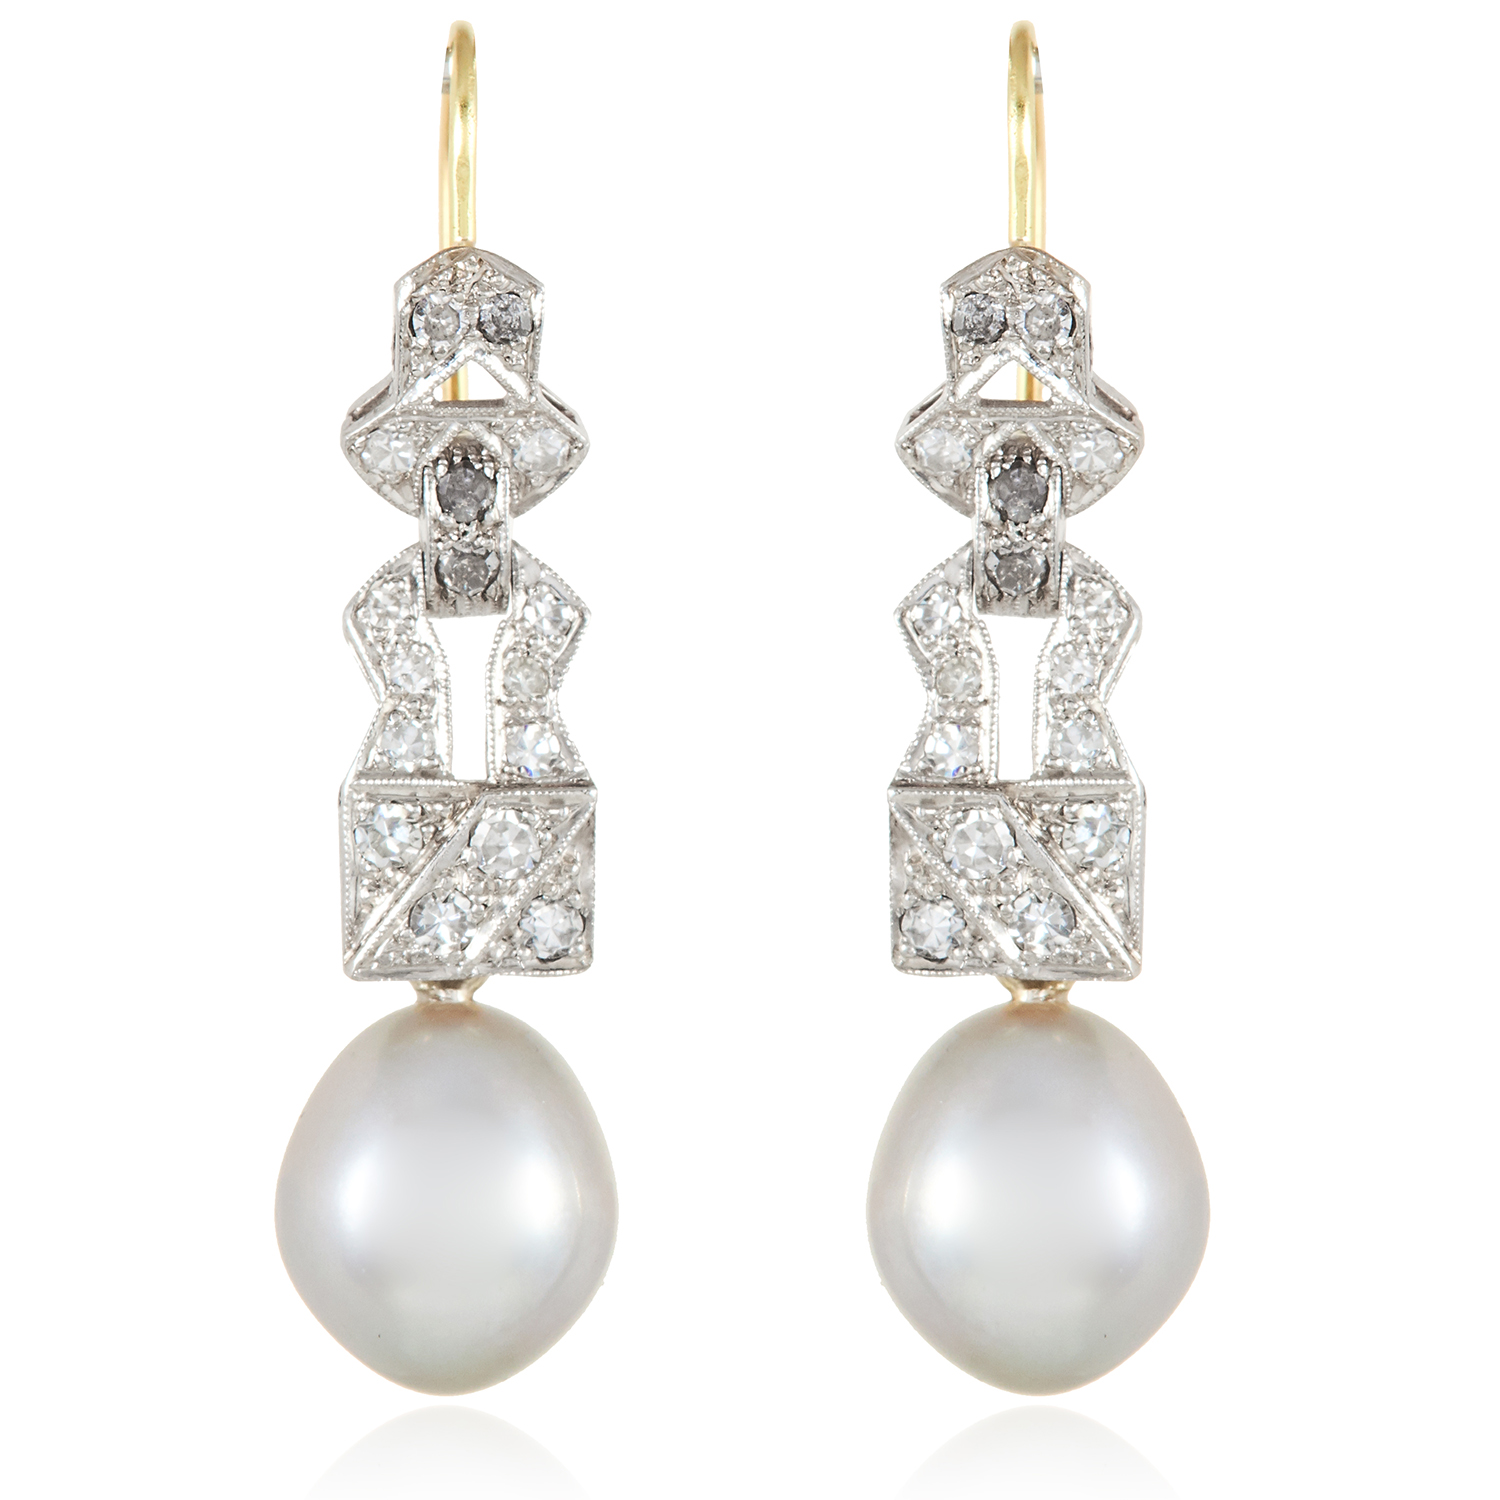 Los 26 - A PAIR OF ART DECO PEARL AND DIAMOND EARRINGS in 18ct yellow gold and platinum, each suspending a